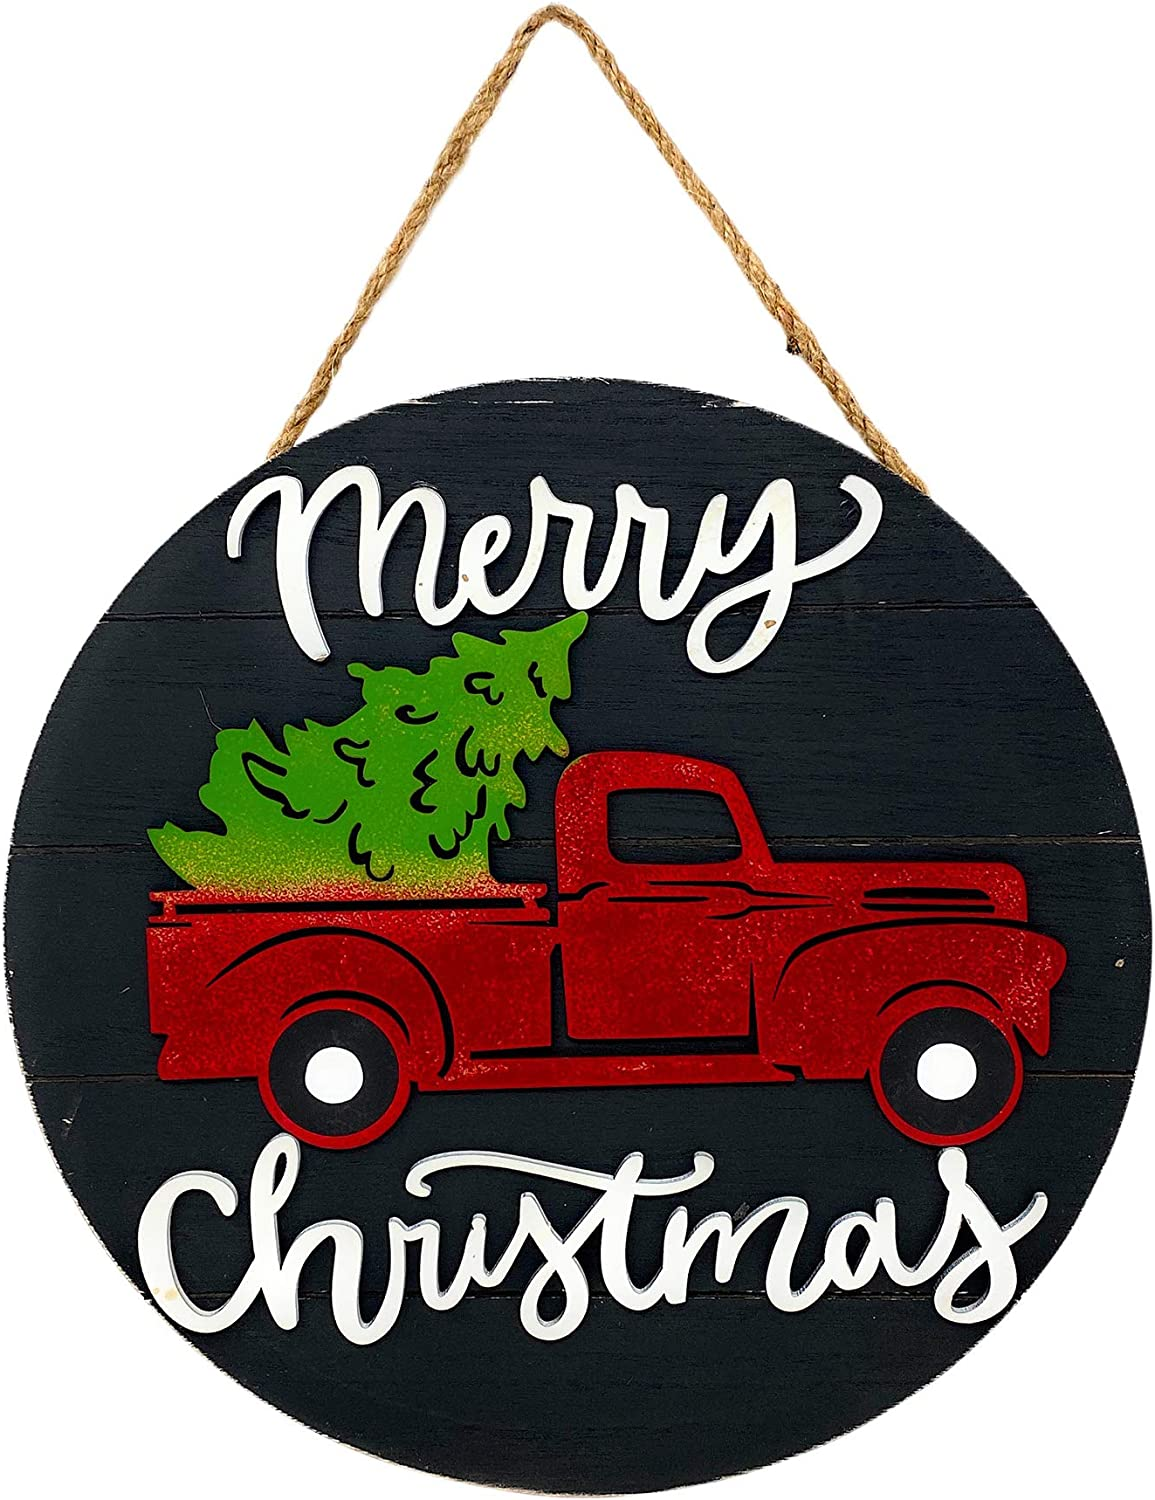 "STC World Merry Christmas Wooden Sign Holiday New Year Decoration Indoor Outdoor Vintage Red Truck 12"" Round (Black)"